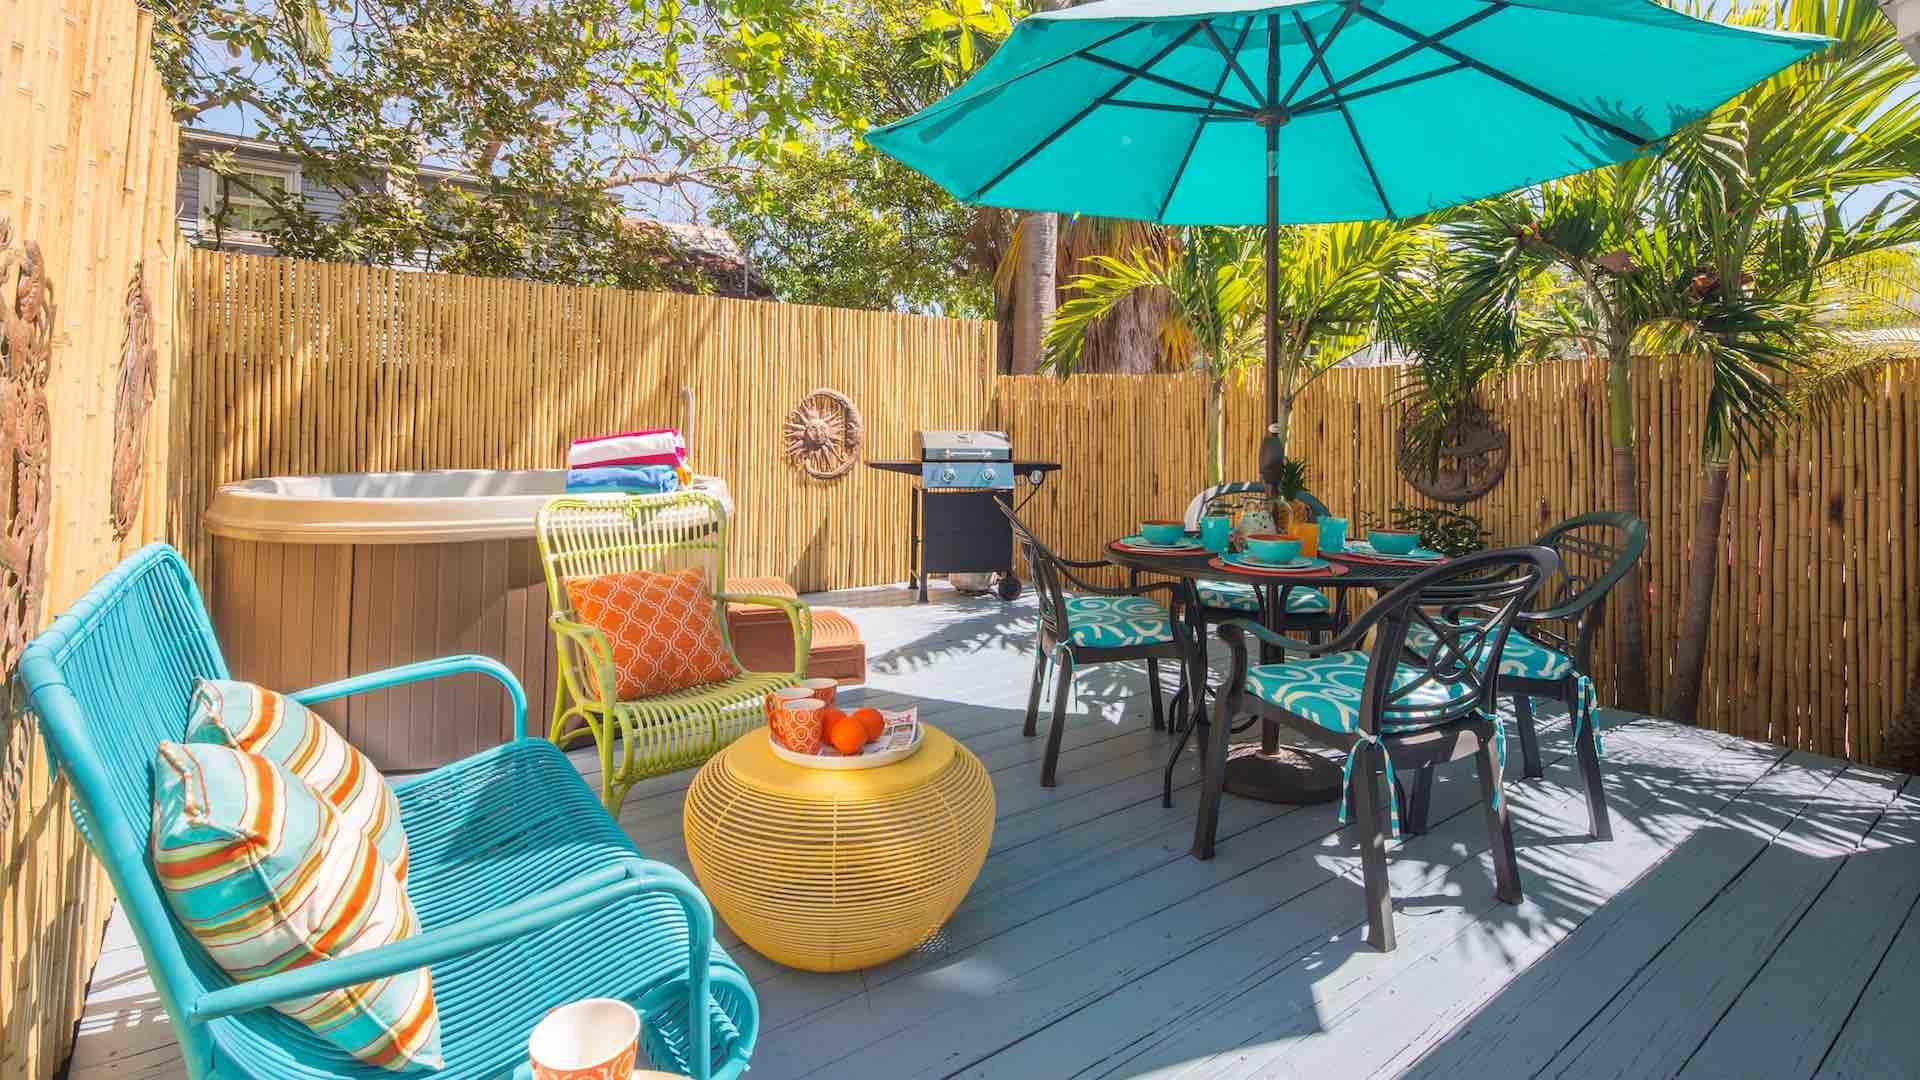 The porch area is completely privated and also has a propane BBQ grill...